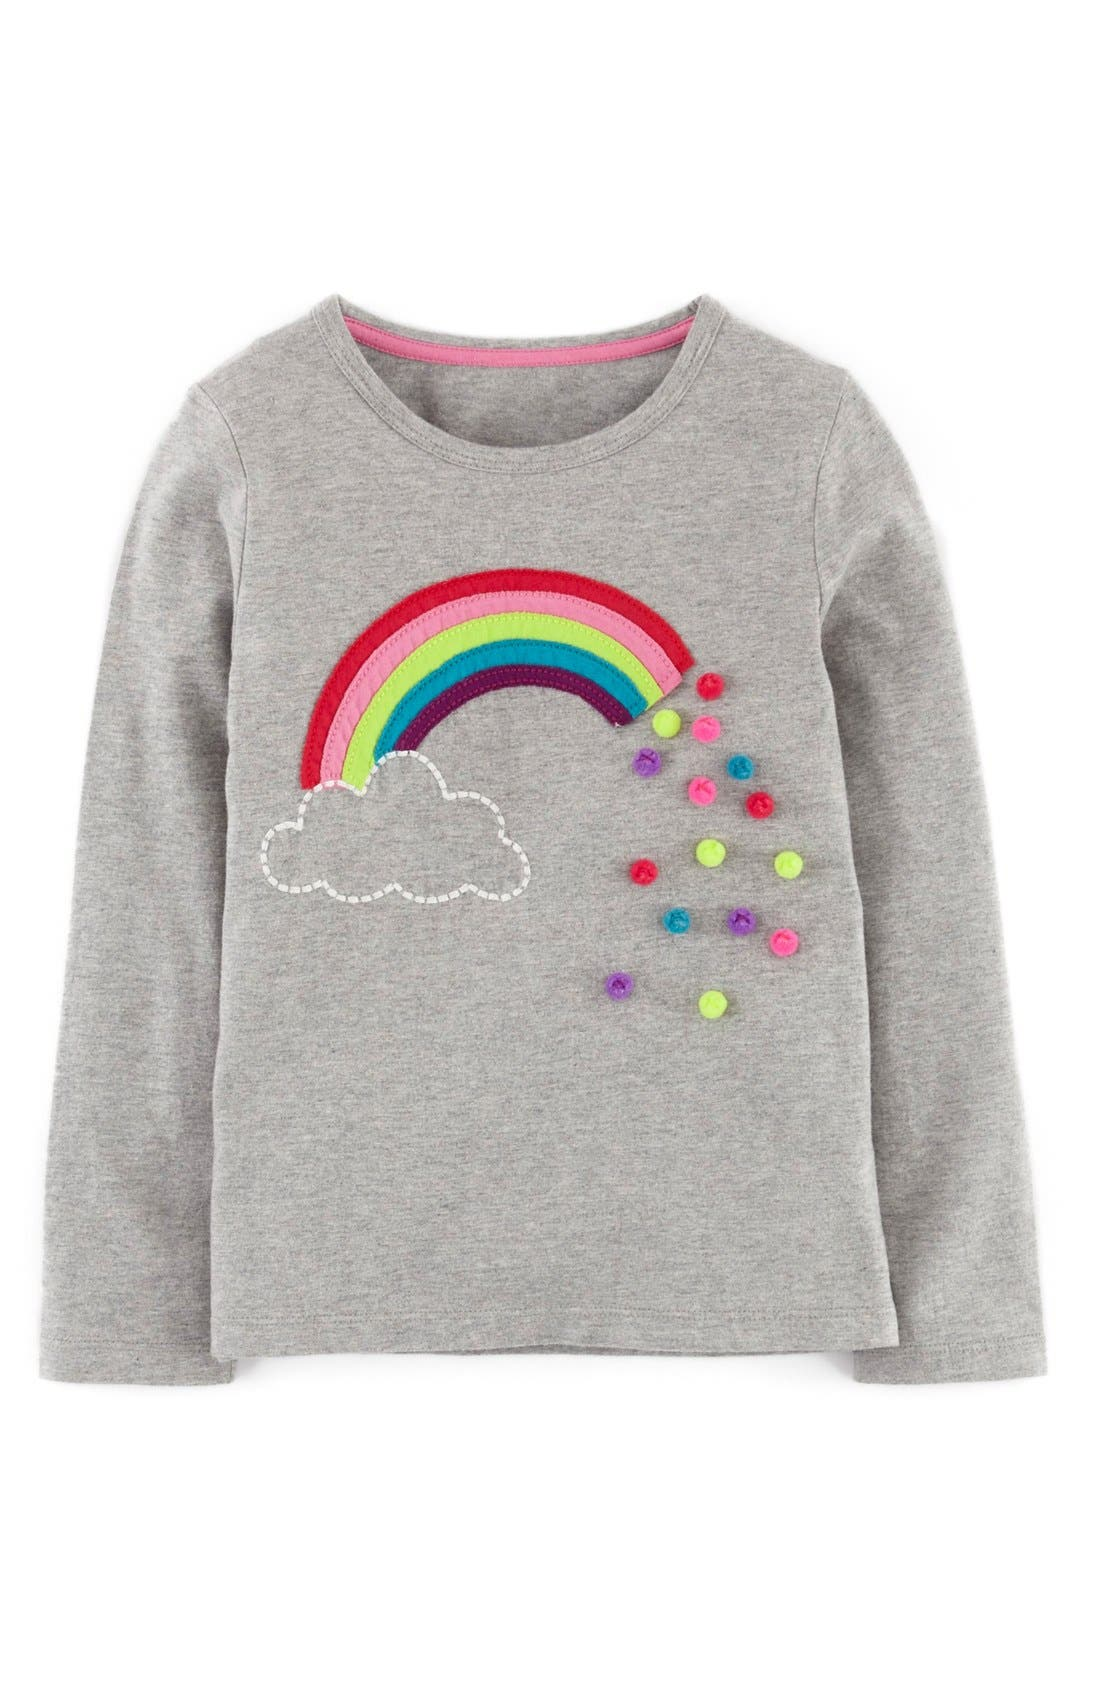 Alternate Image 1 Selected - Mini Boden Dotty Appliqué Tee (Toddler Girls, Little Girls & Big Girls)